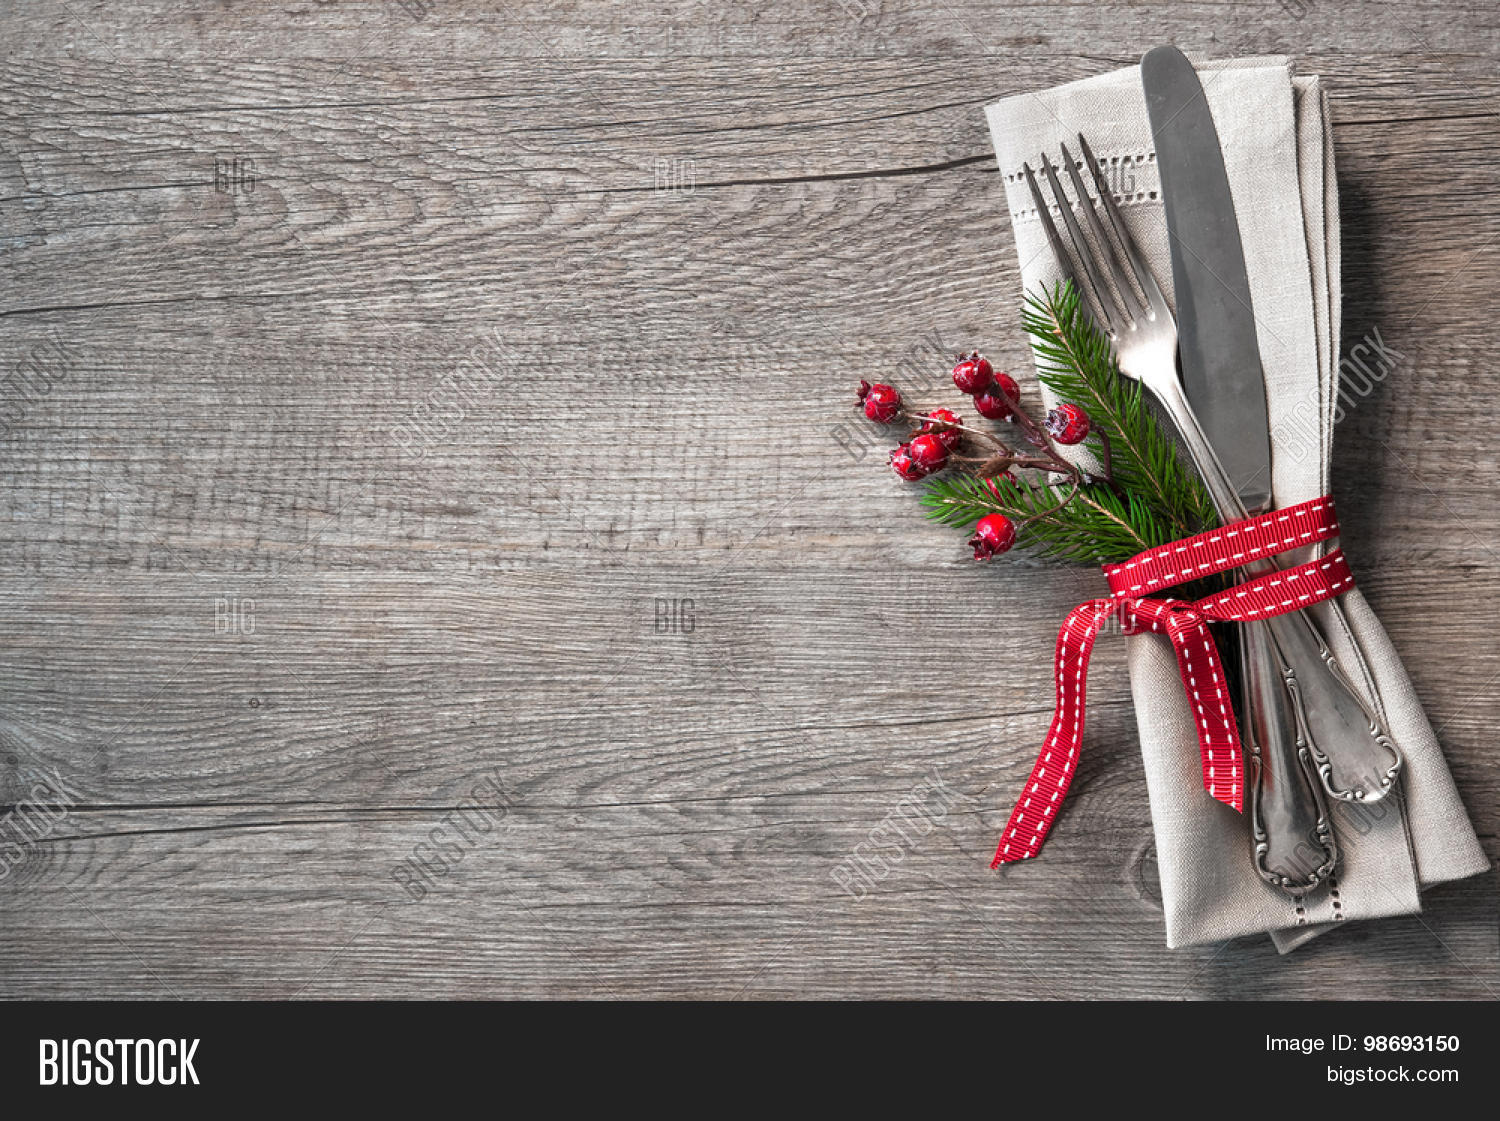 Christmas table place setting image photo bigstock for Place setting images